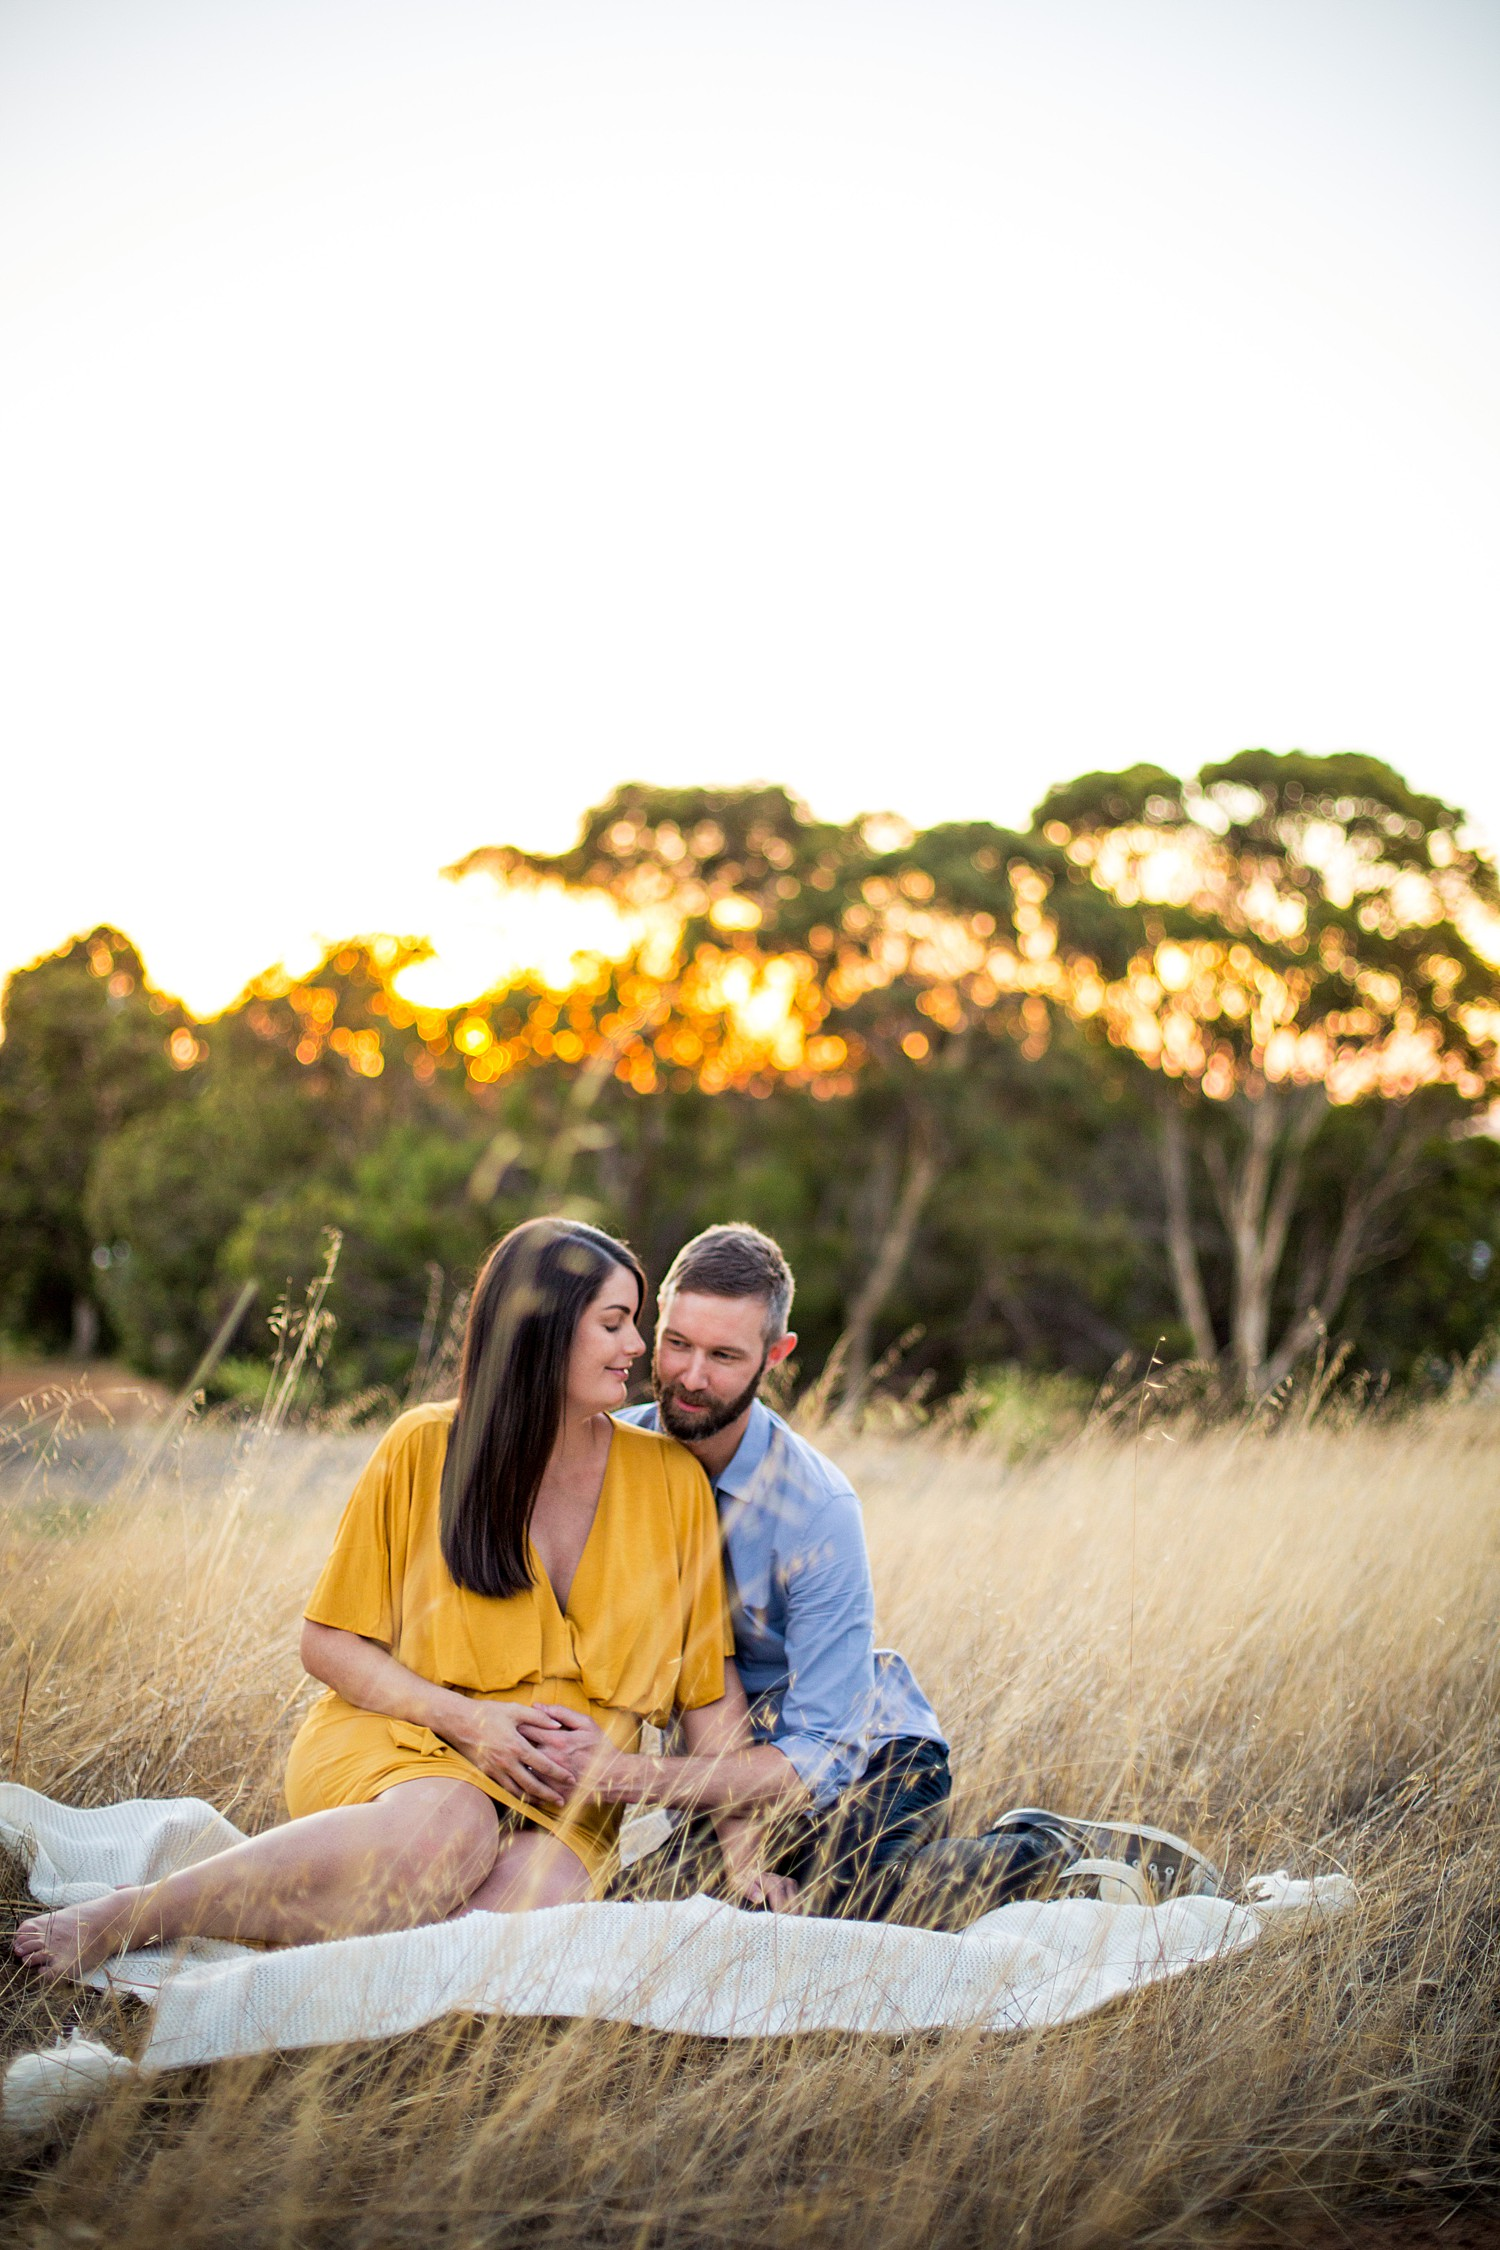 perth_hills_bush_maternity_photography_0020.jpg